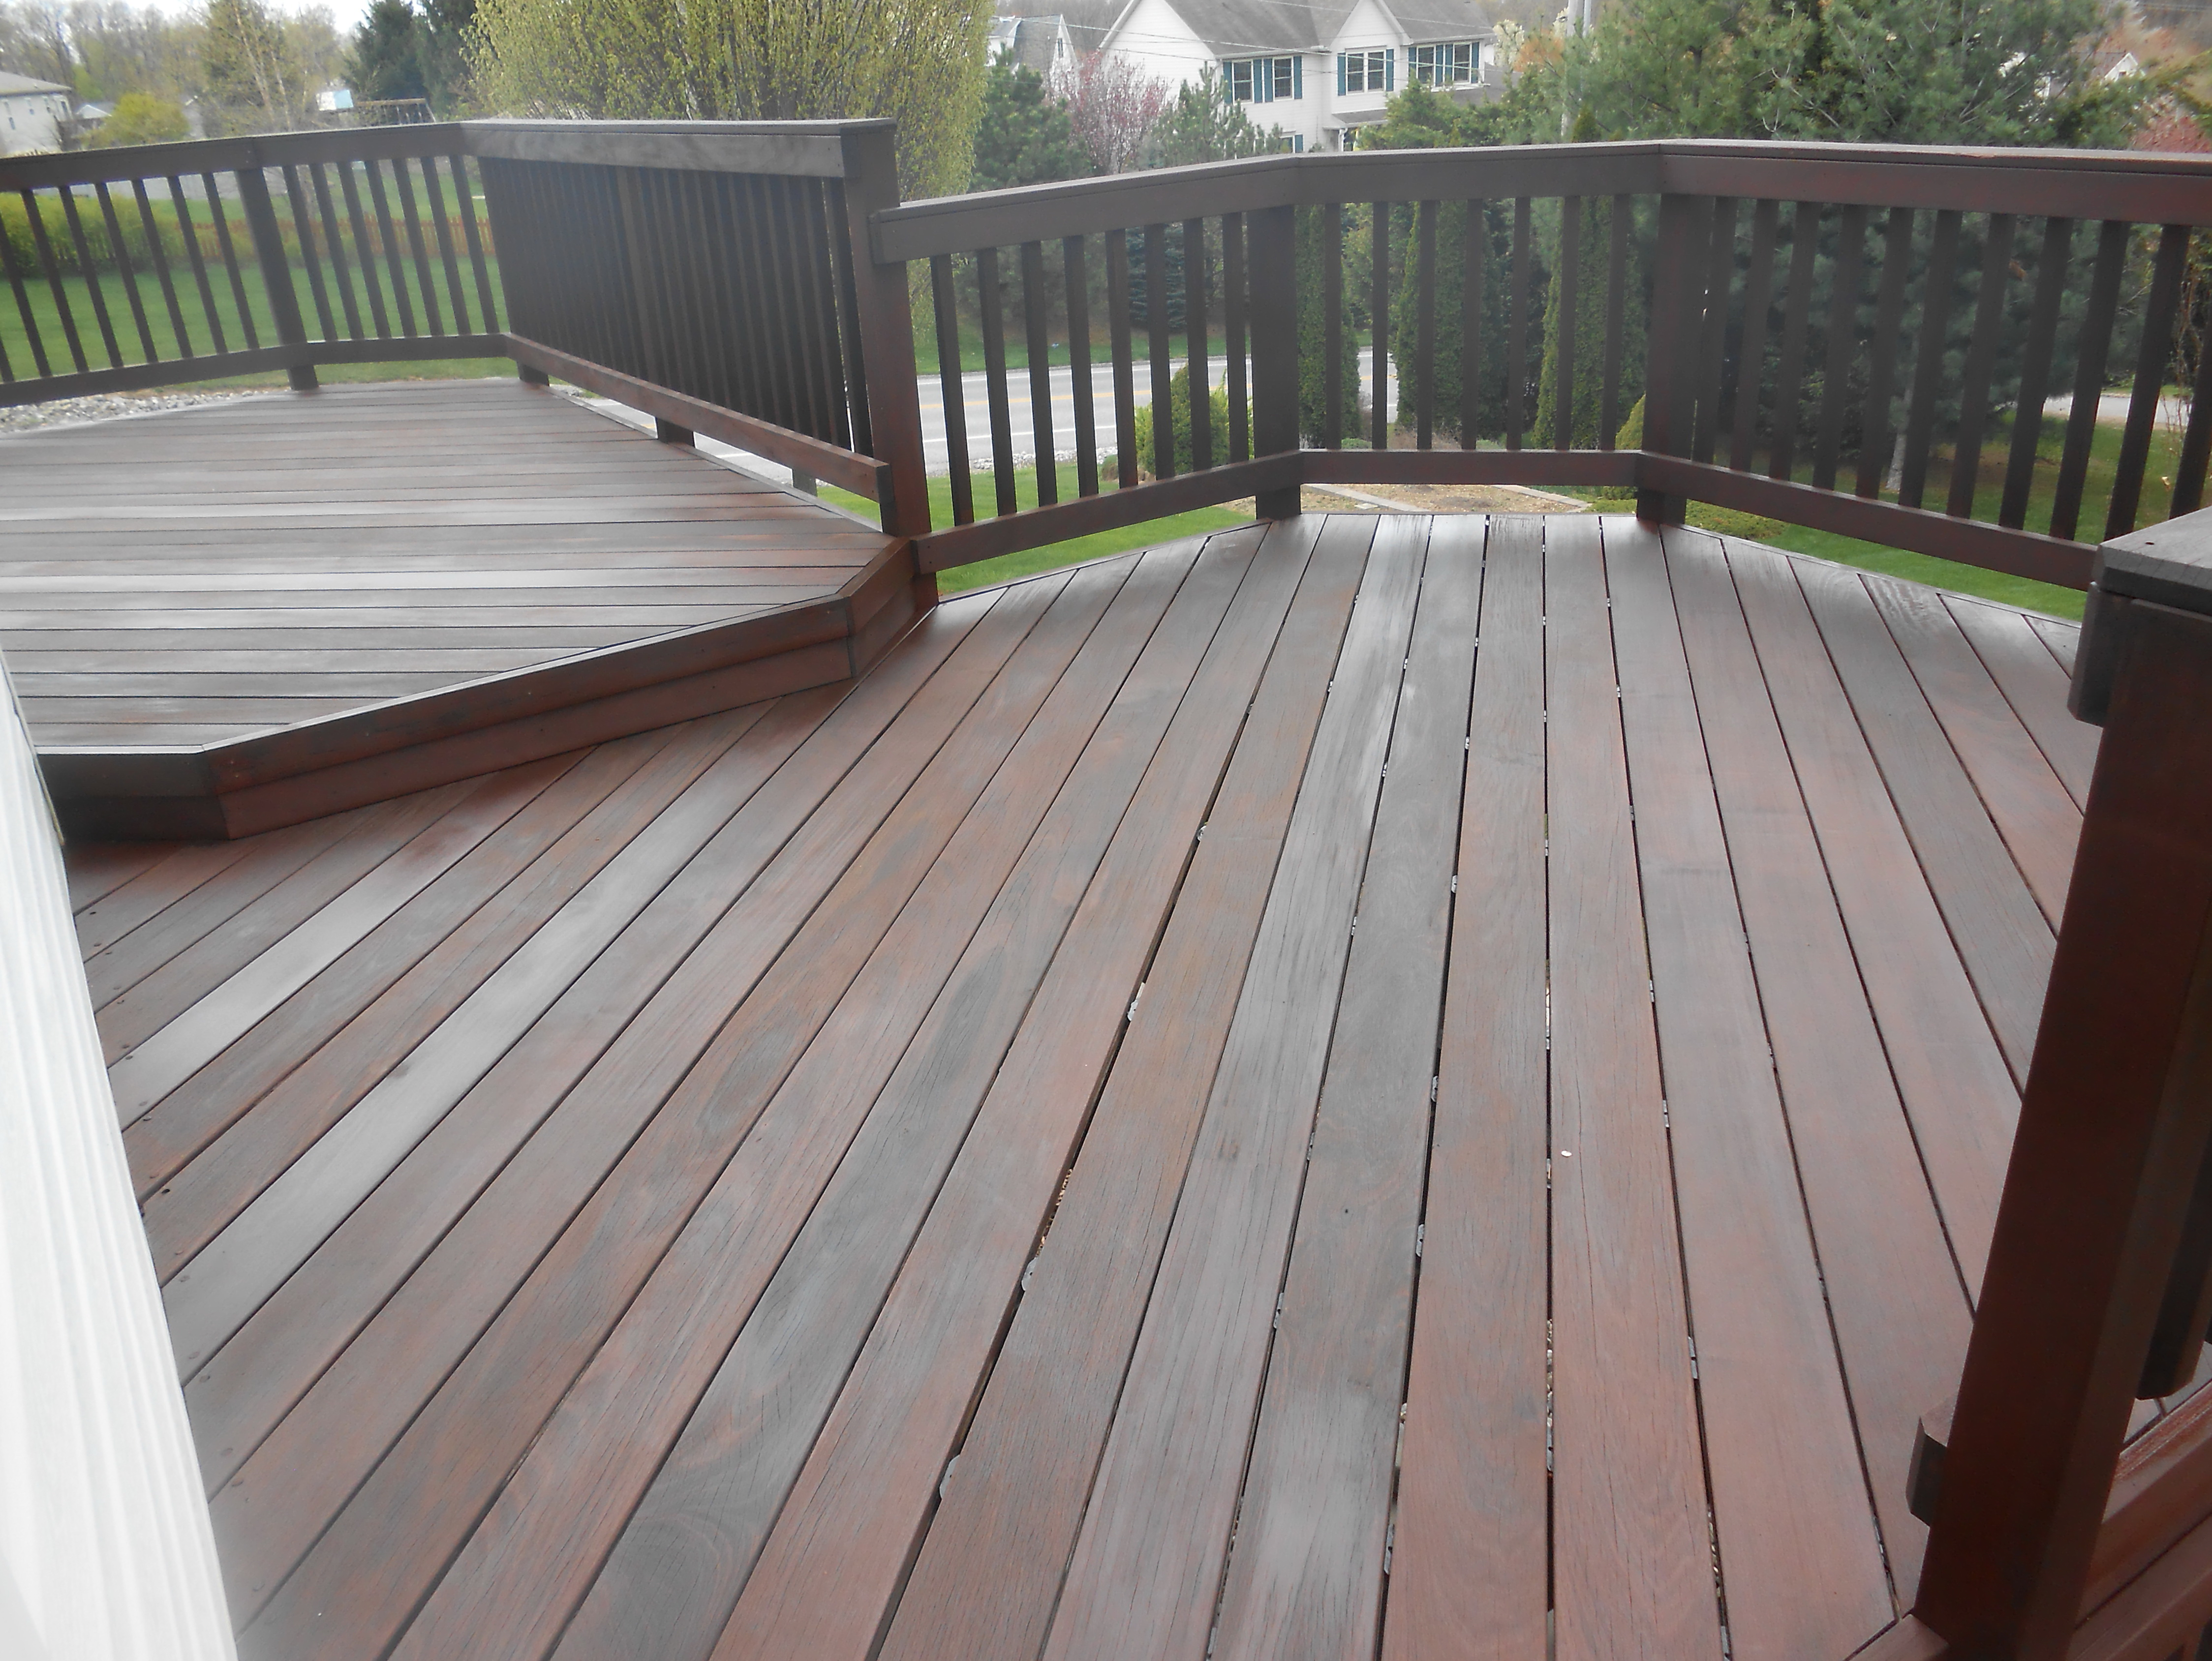 Deck Staining Companies Indianapolis Indianapolis Concrete